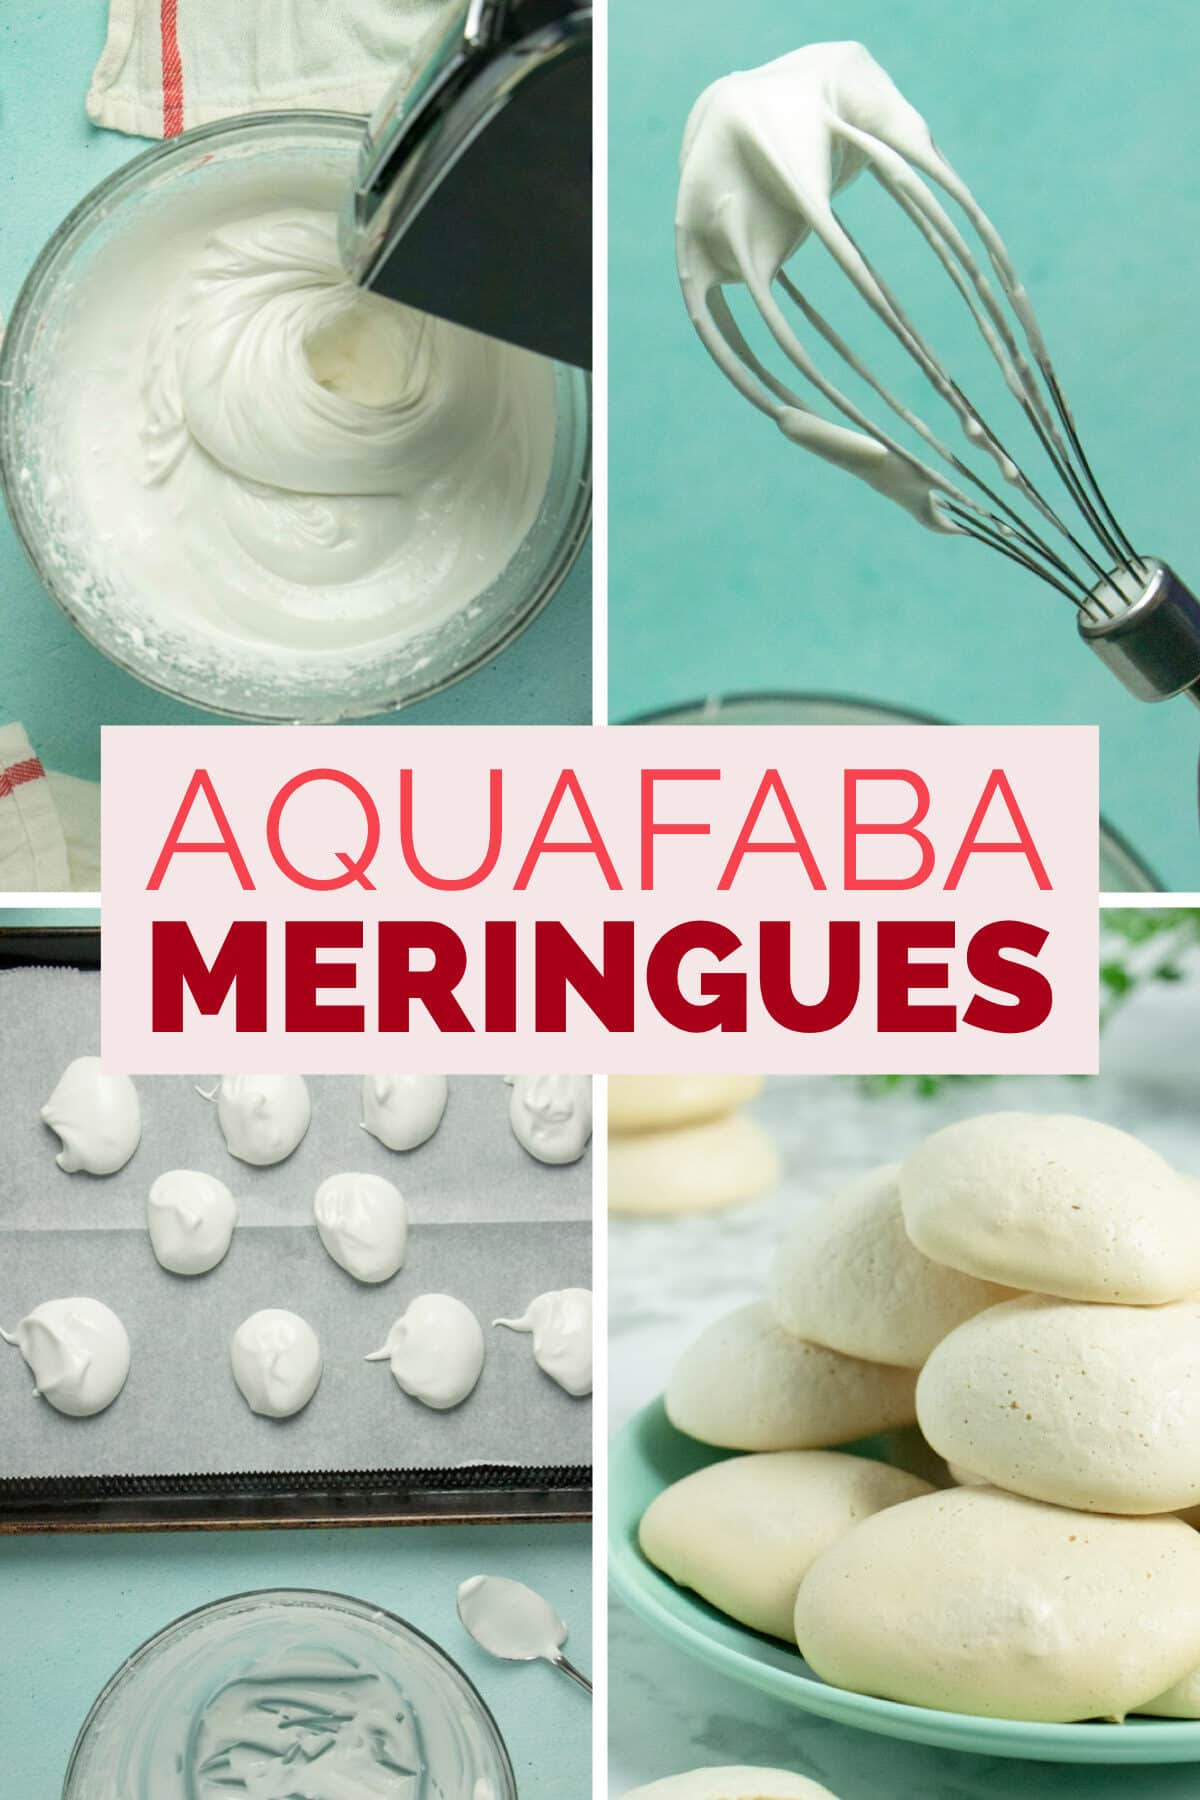 image collage of whipping aquafaba, soft peaks on a beater, uncooked meringues on a baking sheet, and baked meringues on a plate, text overlay